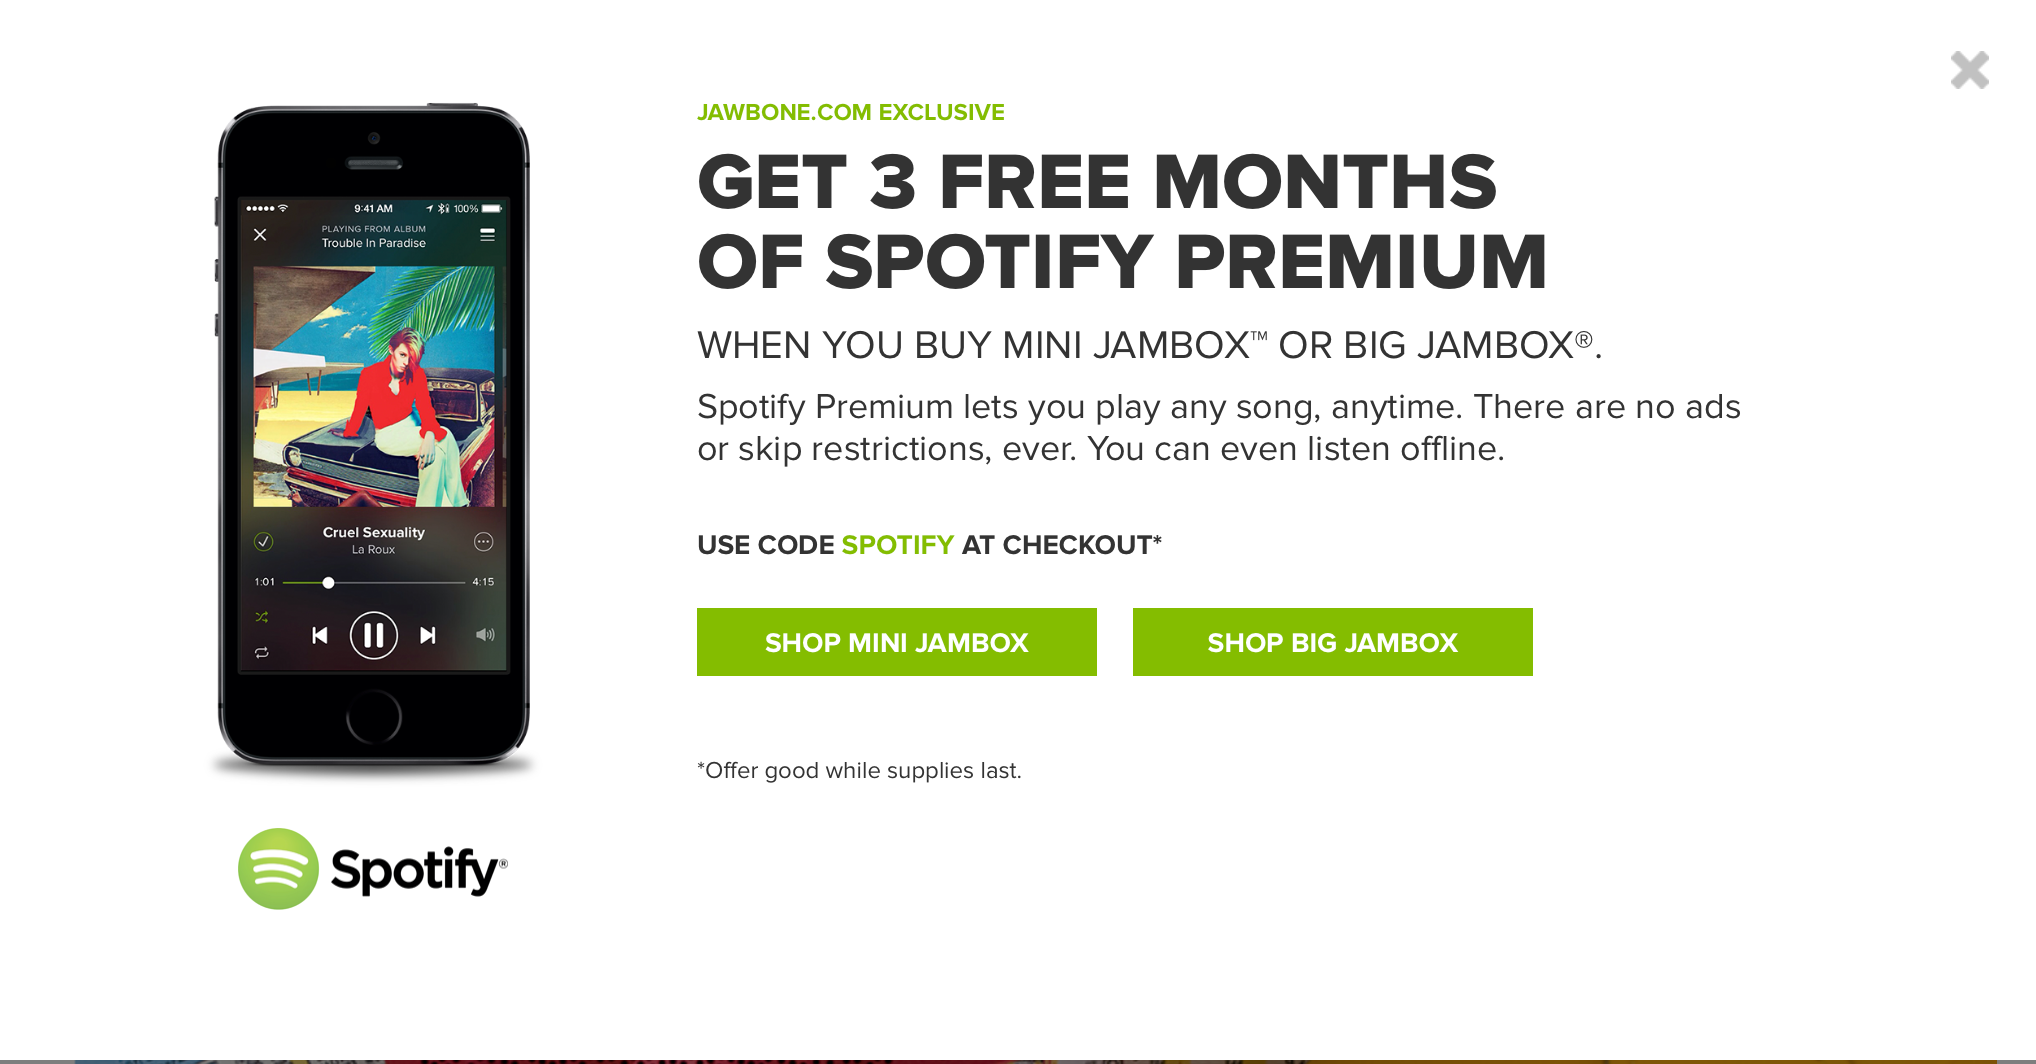 Jawbone and Spotify team up for a limited time promotion